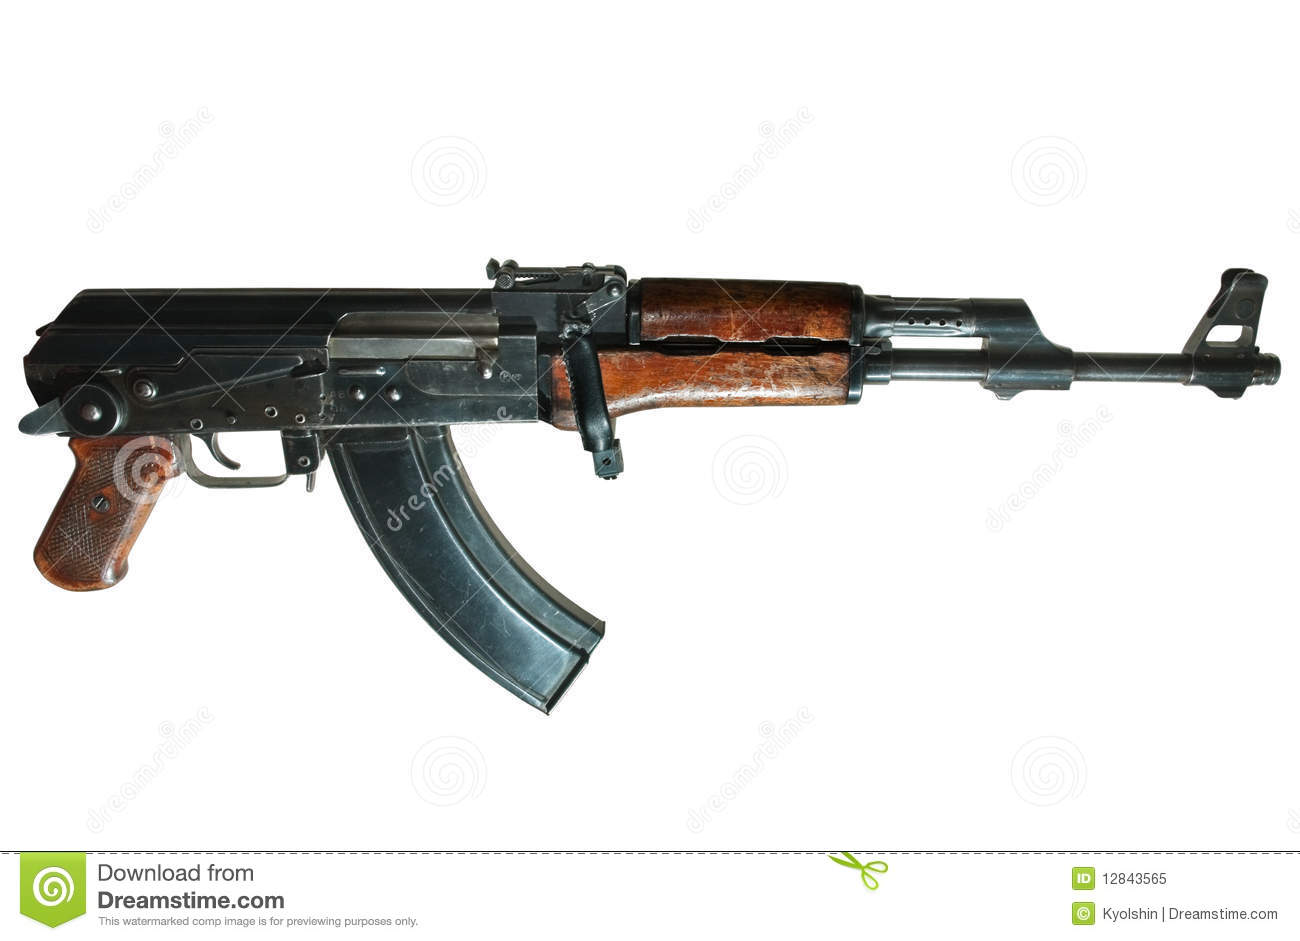 Ak-47 Machine Gun Royalty Free Stock Photo - Image: 12843565